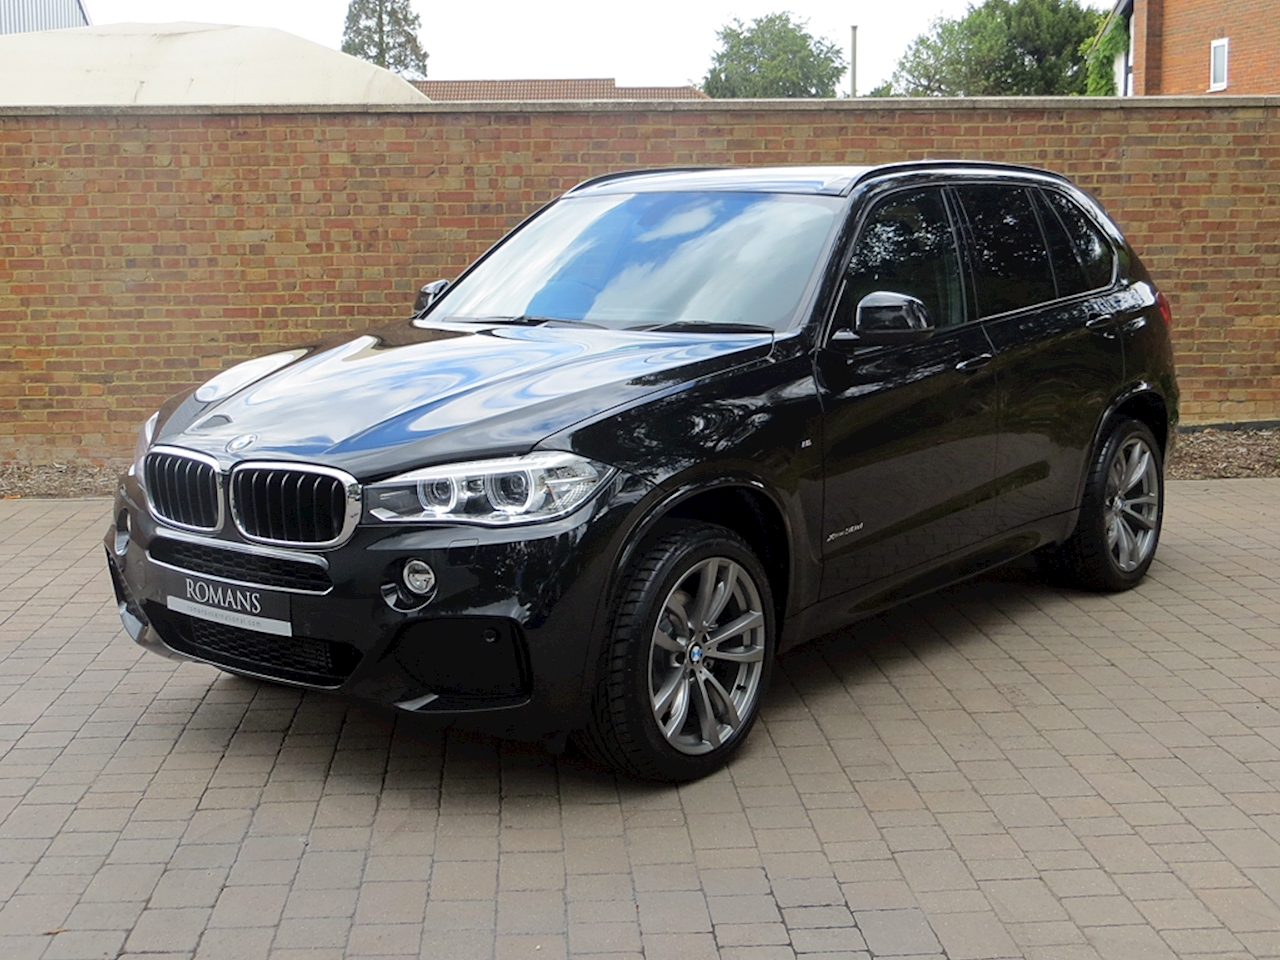 2014 used bmw x5 xdrive30d m sport black sapphire. Black Bedroom Furniture Sets. Home Design Ideas